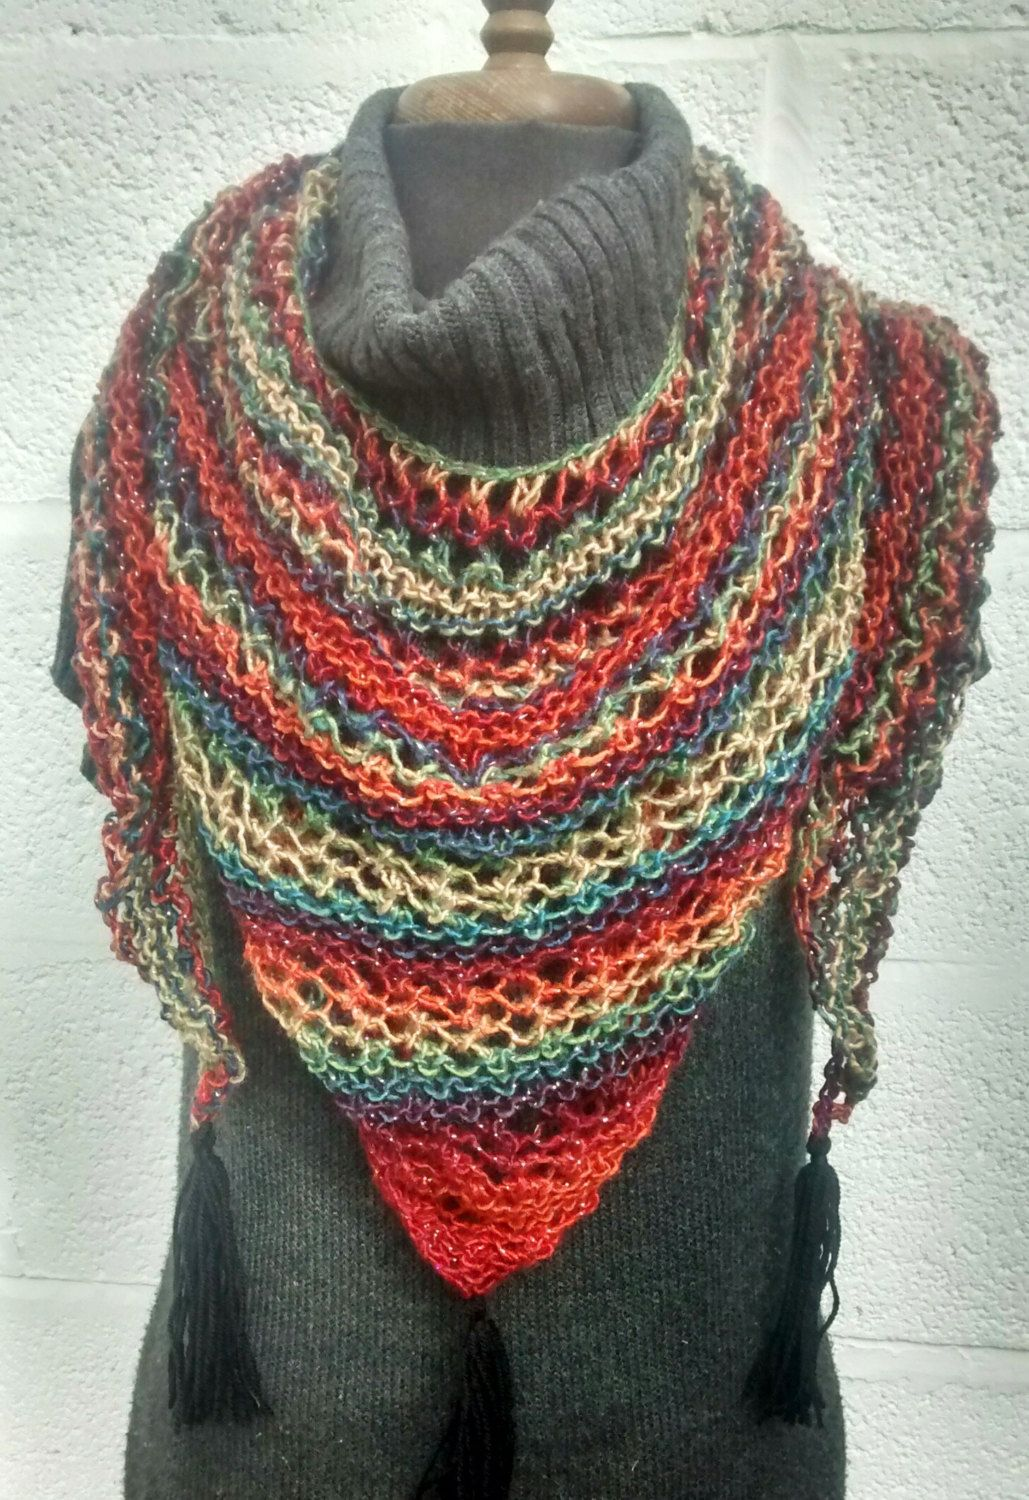 Photo of Ladies Scarf, Handmade Scarf, Knitted Triangle Scarf, Shawl with Tassels, Ladies Wrap, Kath Heywood Designs, UK